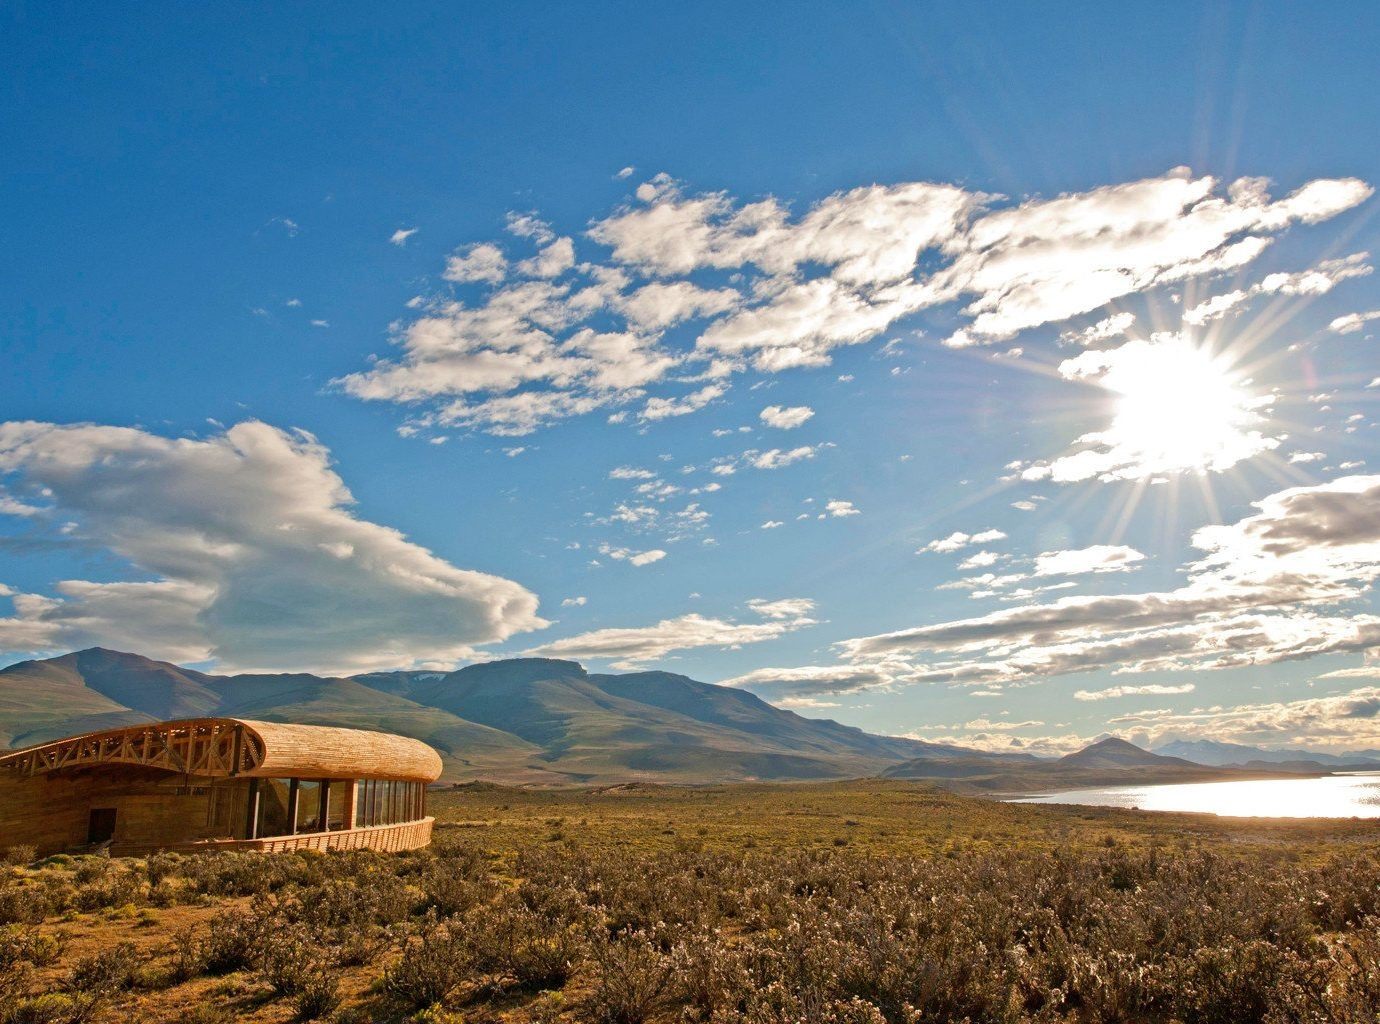 All-Inclusive Resorts Beach Hotels Mountains Nature Outdoors Romantic Hotels Waterfront outdoor sky mountain mountainous landforms geographical feature cloud horizon natural environment wilderness grassland ecosystem plain hill prairie field mountain range landscape morning plateau sunlight steppe rural area valley hillside highland